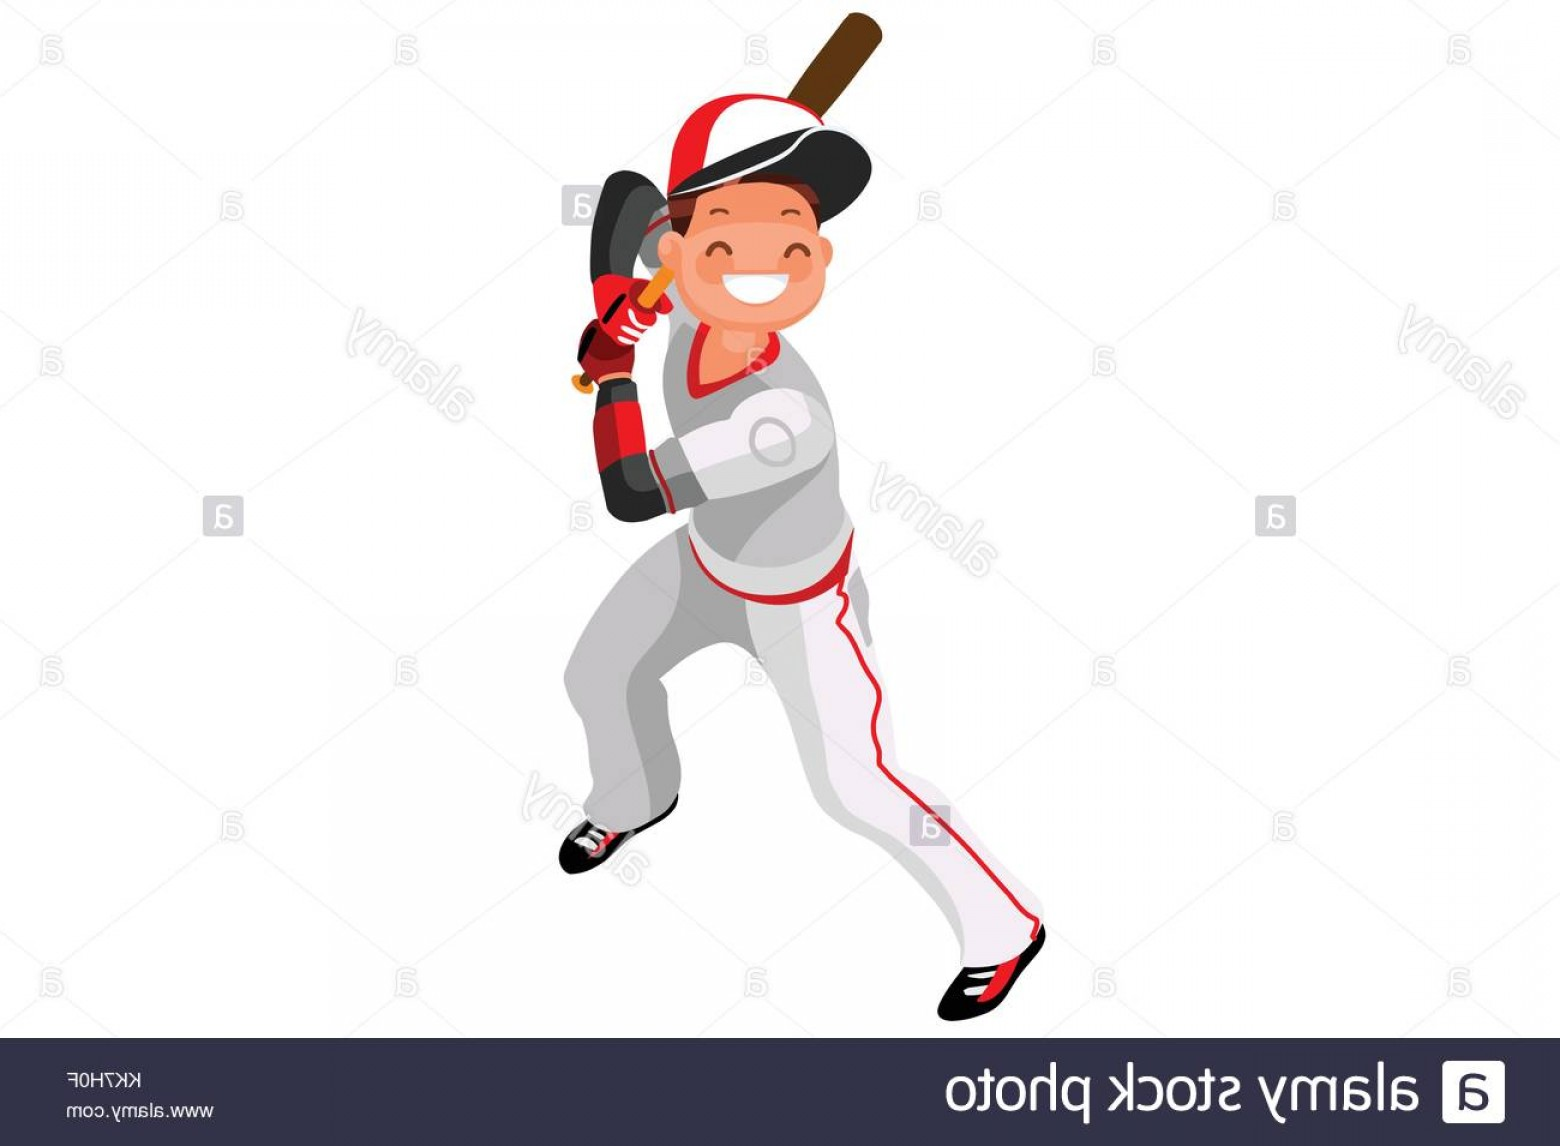 MLB Vectors: Stock Photo Background Of Baseball With Vector Mascotte Sport Poster With Mlb